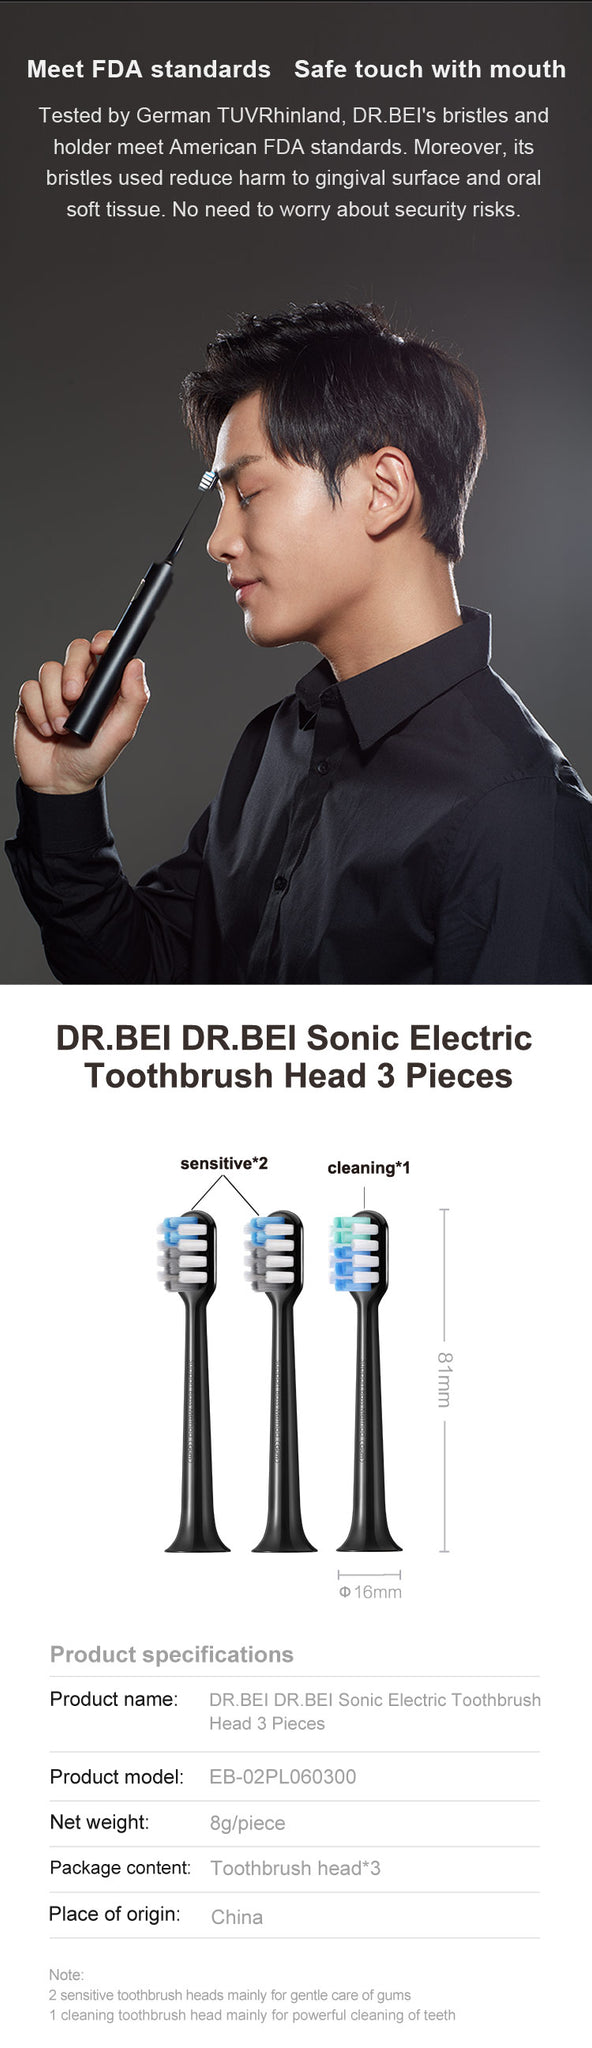 DR.BEI Black Gold Toothbrush  Head, 3 Pieces Xiaomi Youpin DR·BEI Electric Tooth Brush Heads Parts 3Pcs/set for BY-V12 Ultrasonic Electric Toothbrush Teeth Cleaning Brush Head Replacement